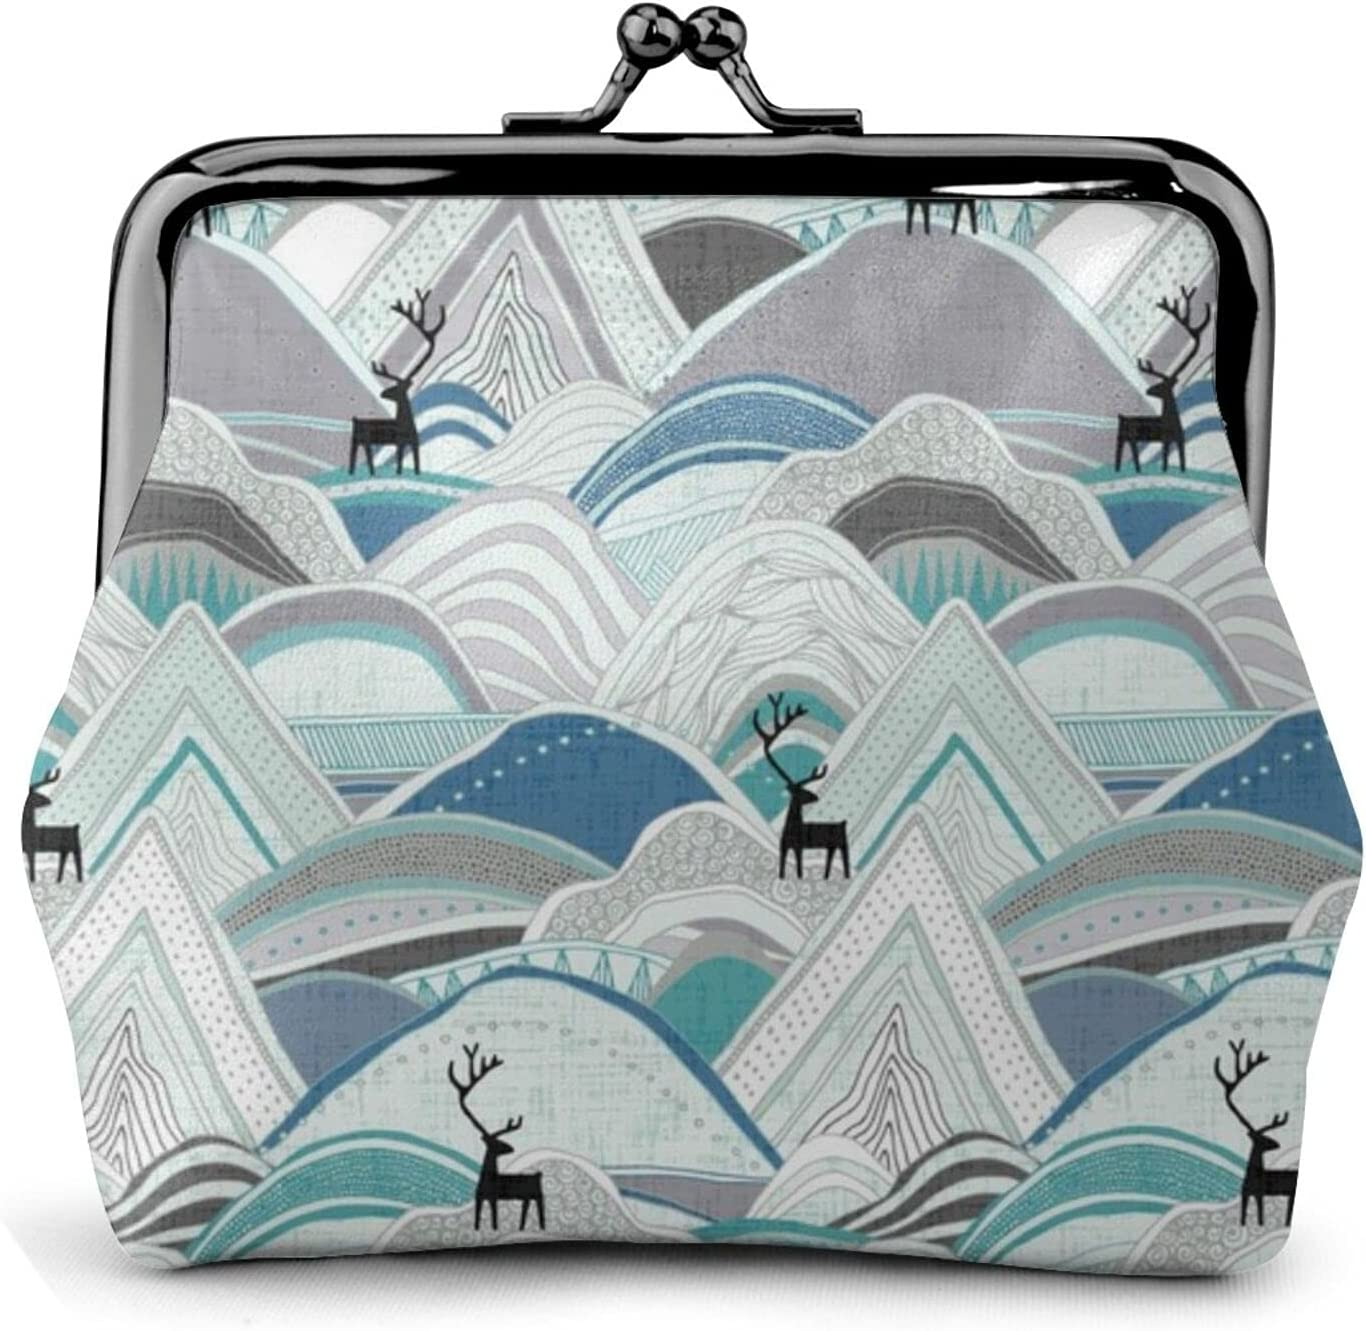 Caribou Mountains Blue 1404 Coin Purse Retro Money Pouch with Kiss-lock Buckle Small Wallet for Women and Girls